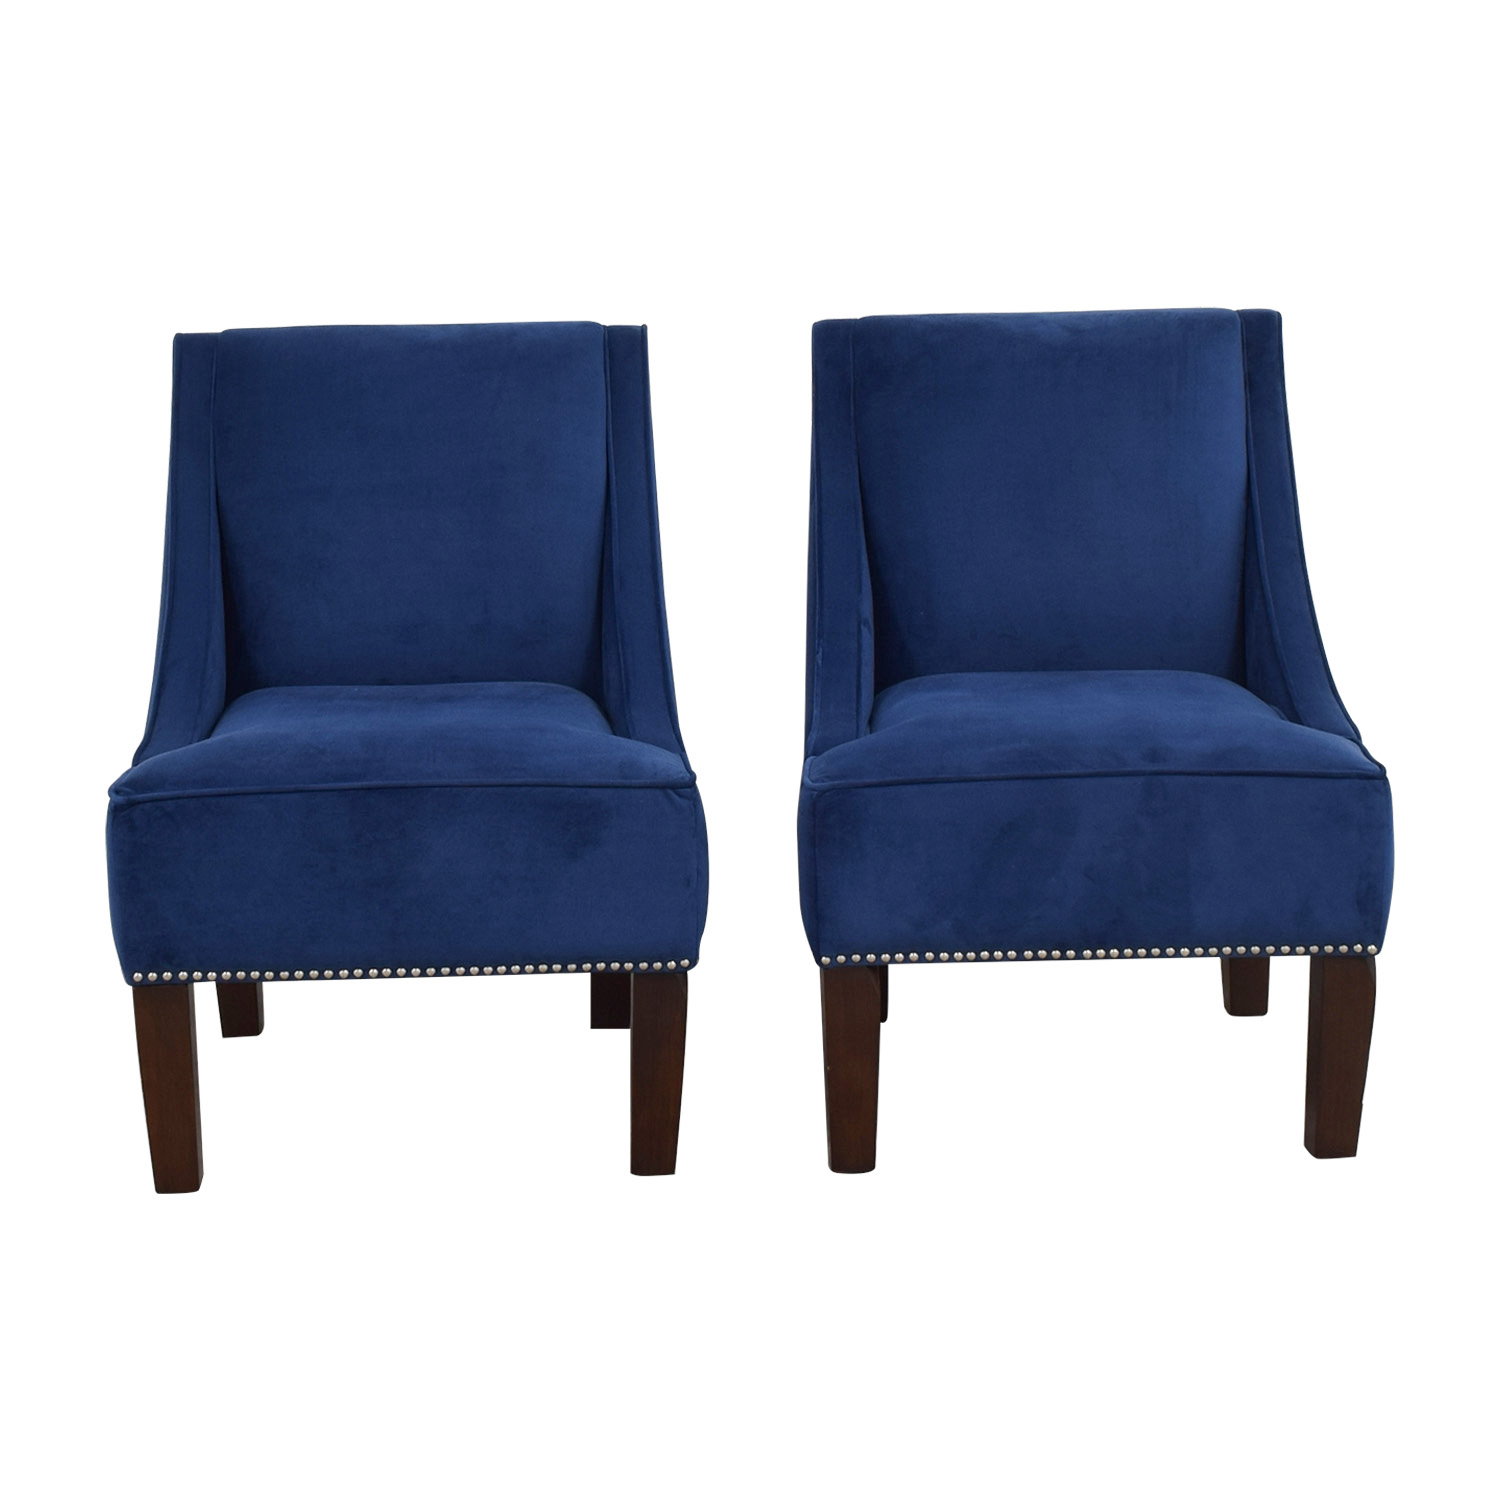 Liza Navy Velvet Nailhead Winged Accent Chairs / Accent Chairs